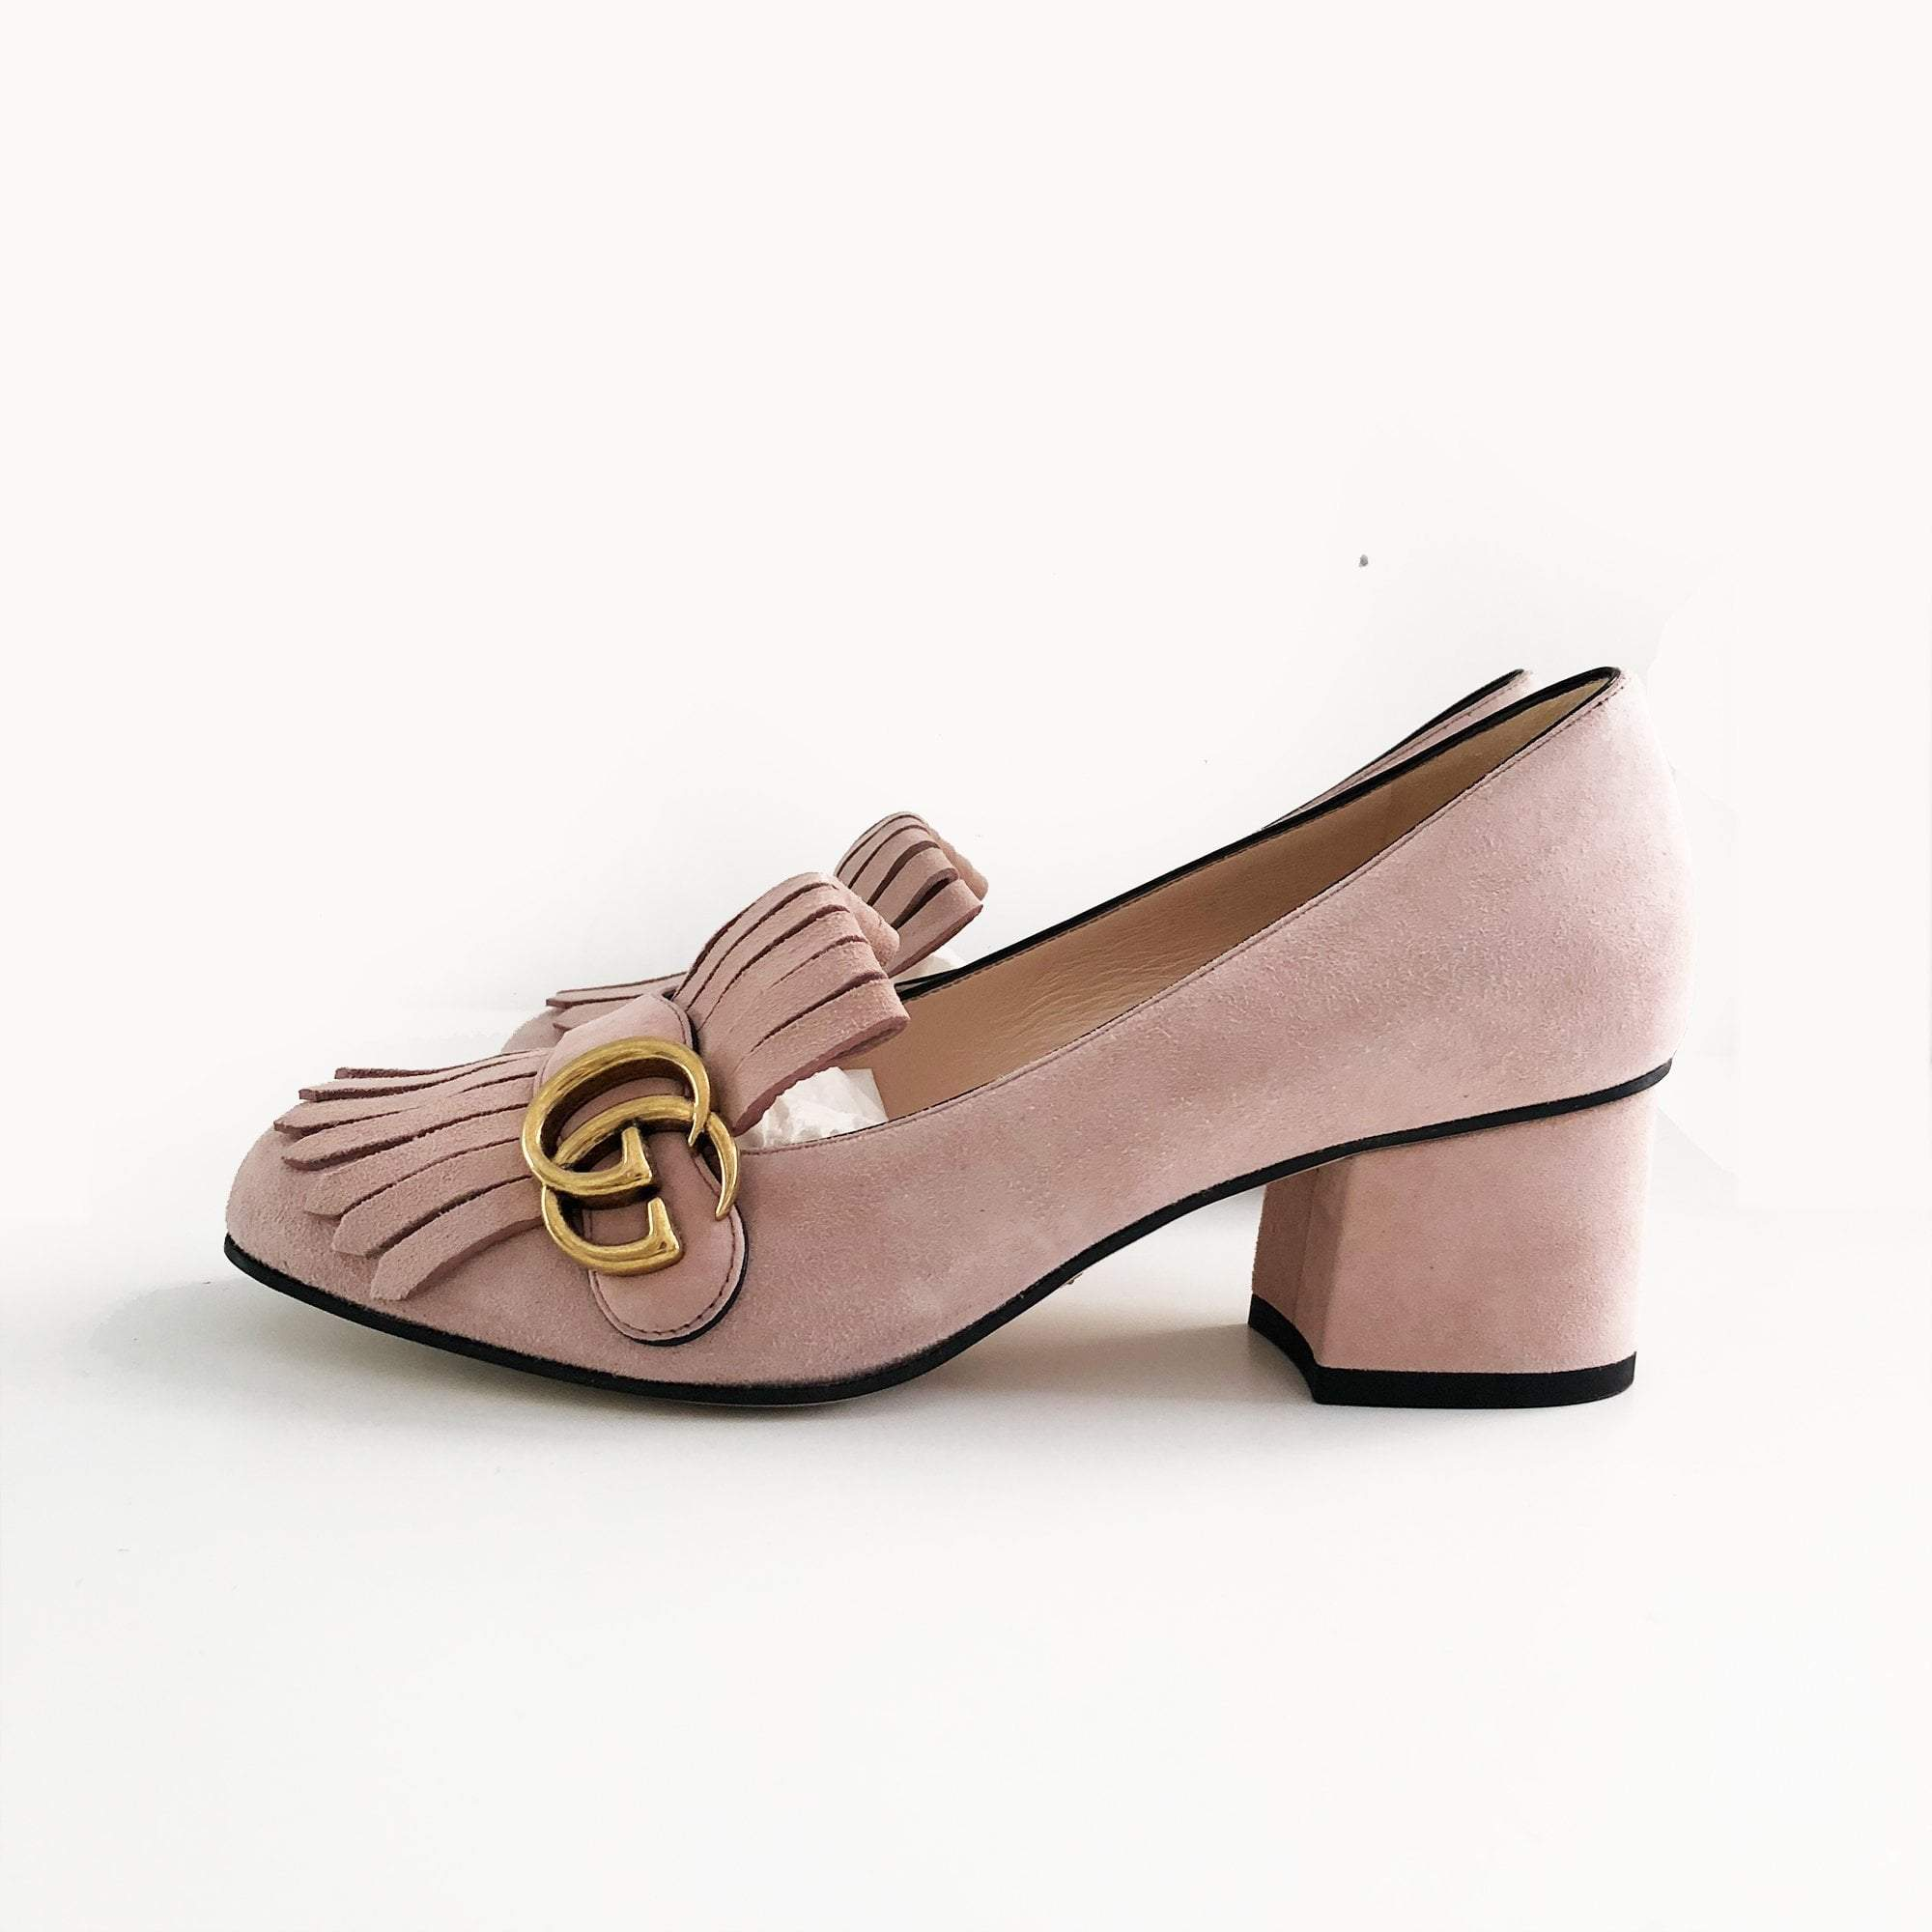 Gucci Marmont Fringe Light Pink Suede Pumps